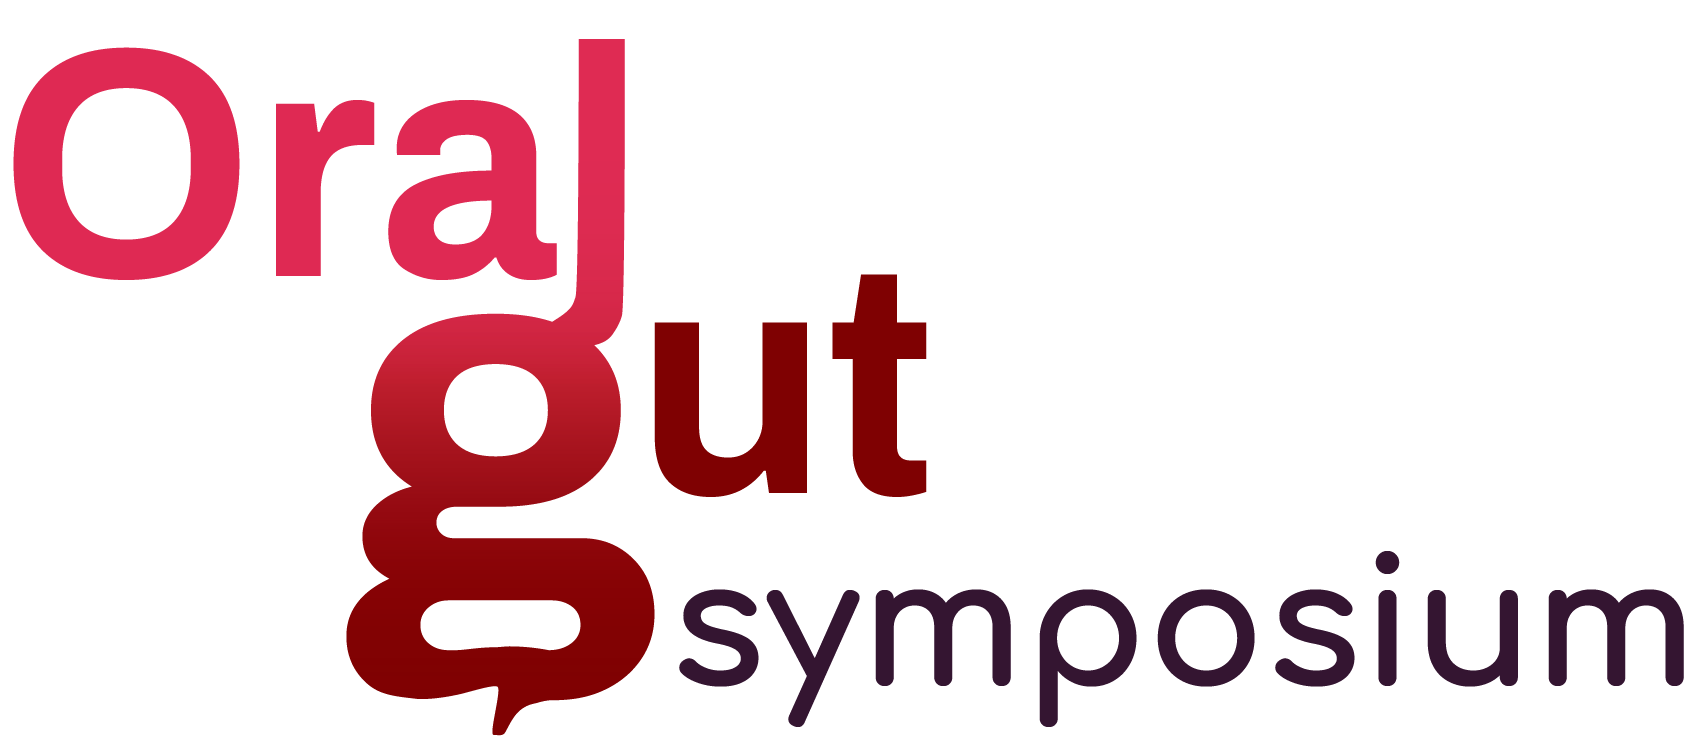 Oral-Gut Symposium. January, 14th 2020 graphic